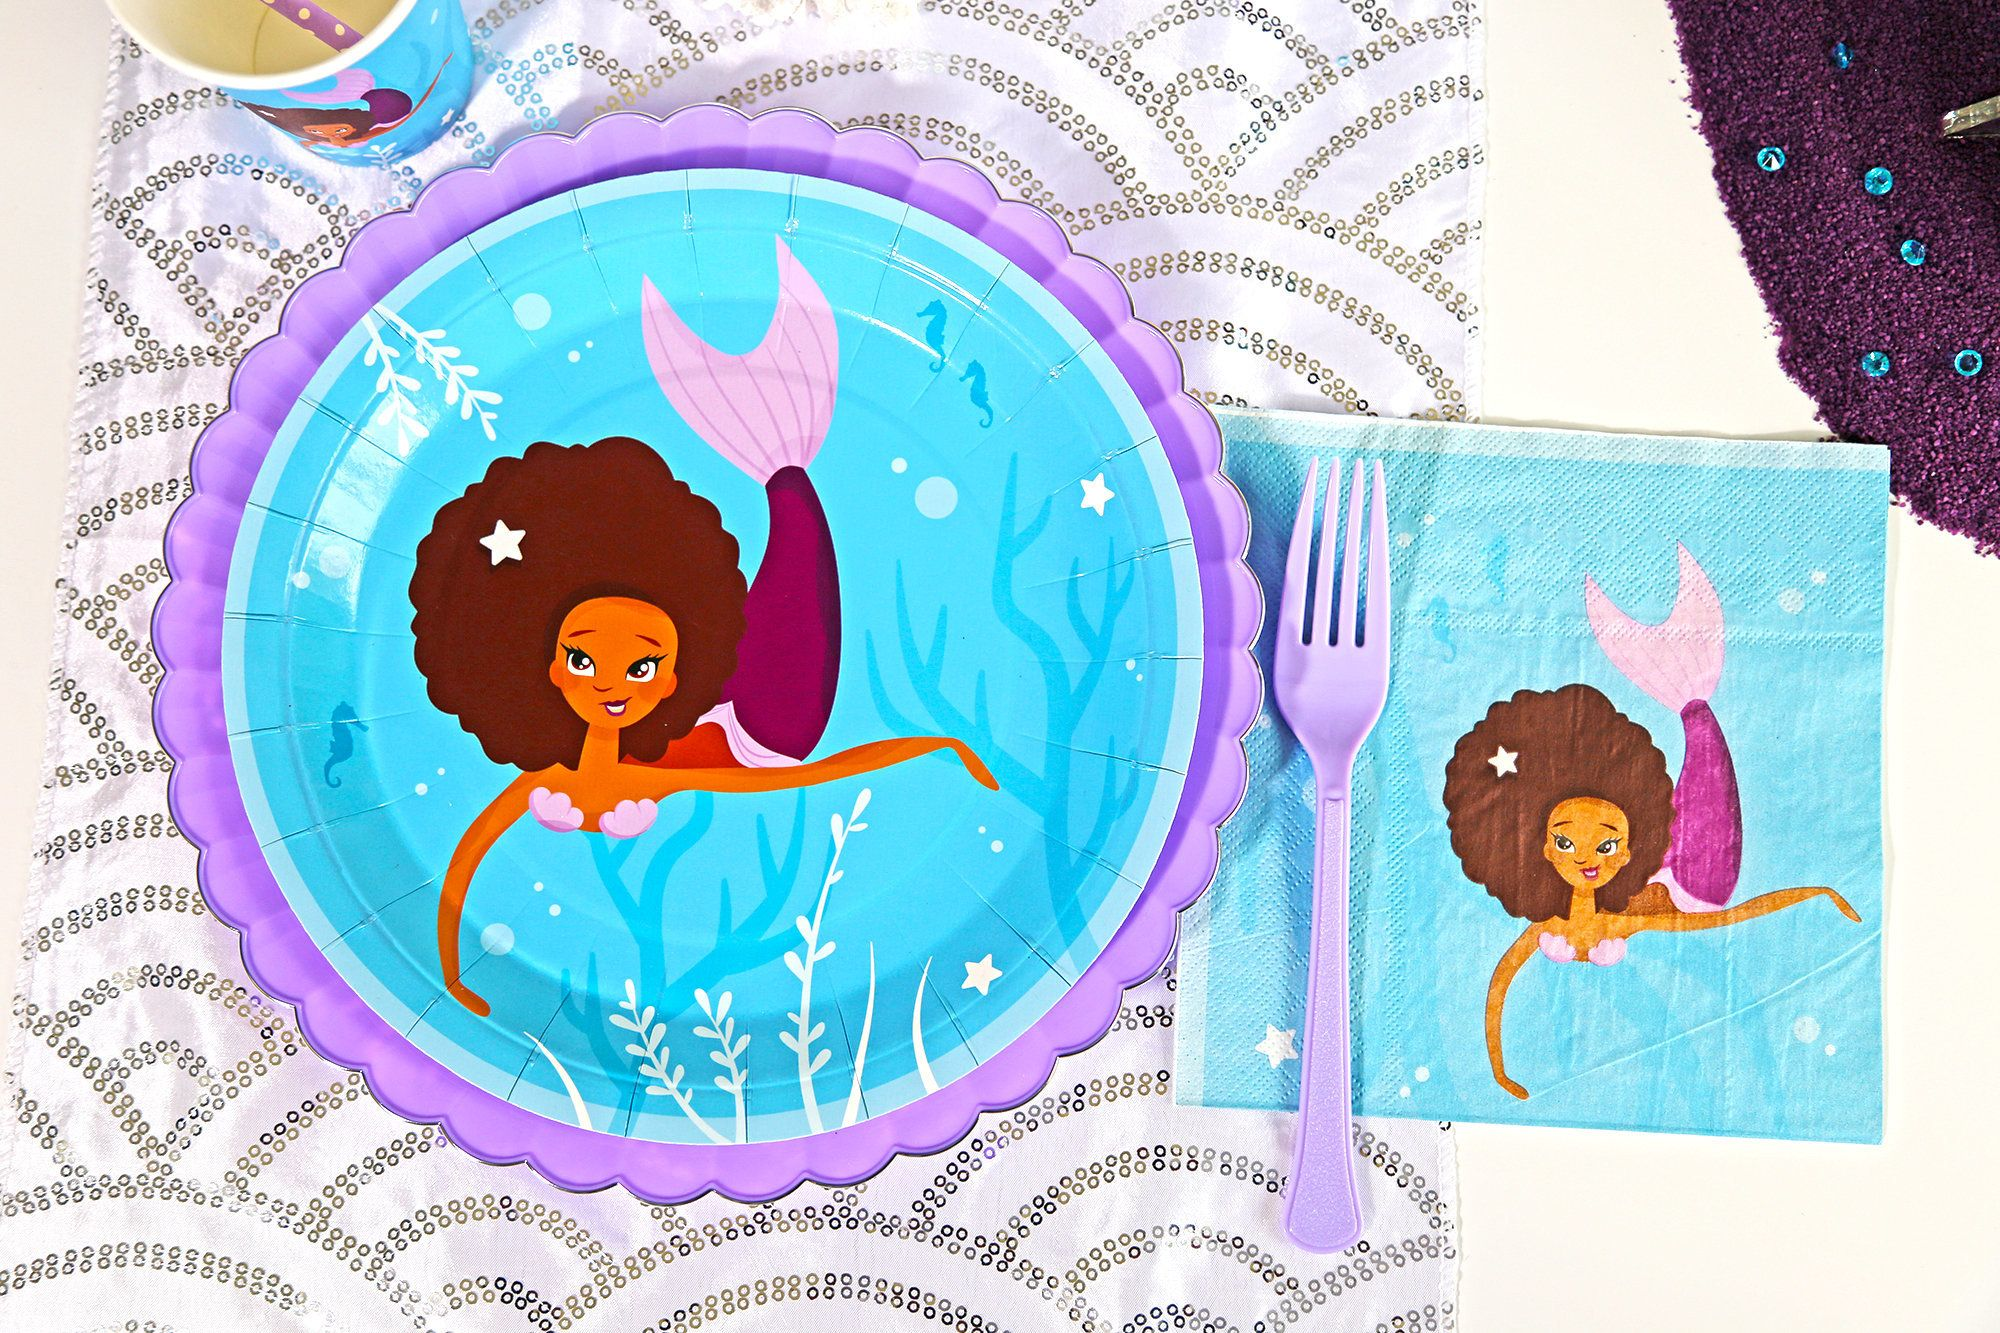 "Event planner Lynnette Abbott has started a <a href=""https://www.kickstarter.com/projects/craftmyoccasion/party-supplies-celebrating-children-of-color/description"" target=""_blank"">Kickstarter campaign</a> so she can print her first run of party supplies with characters of color."